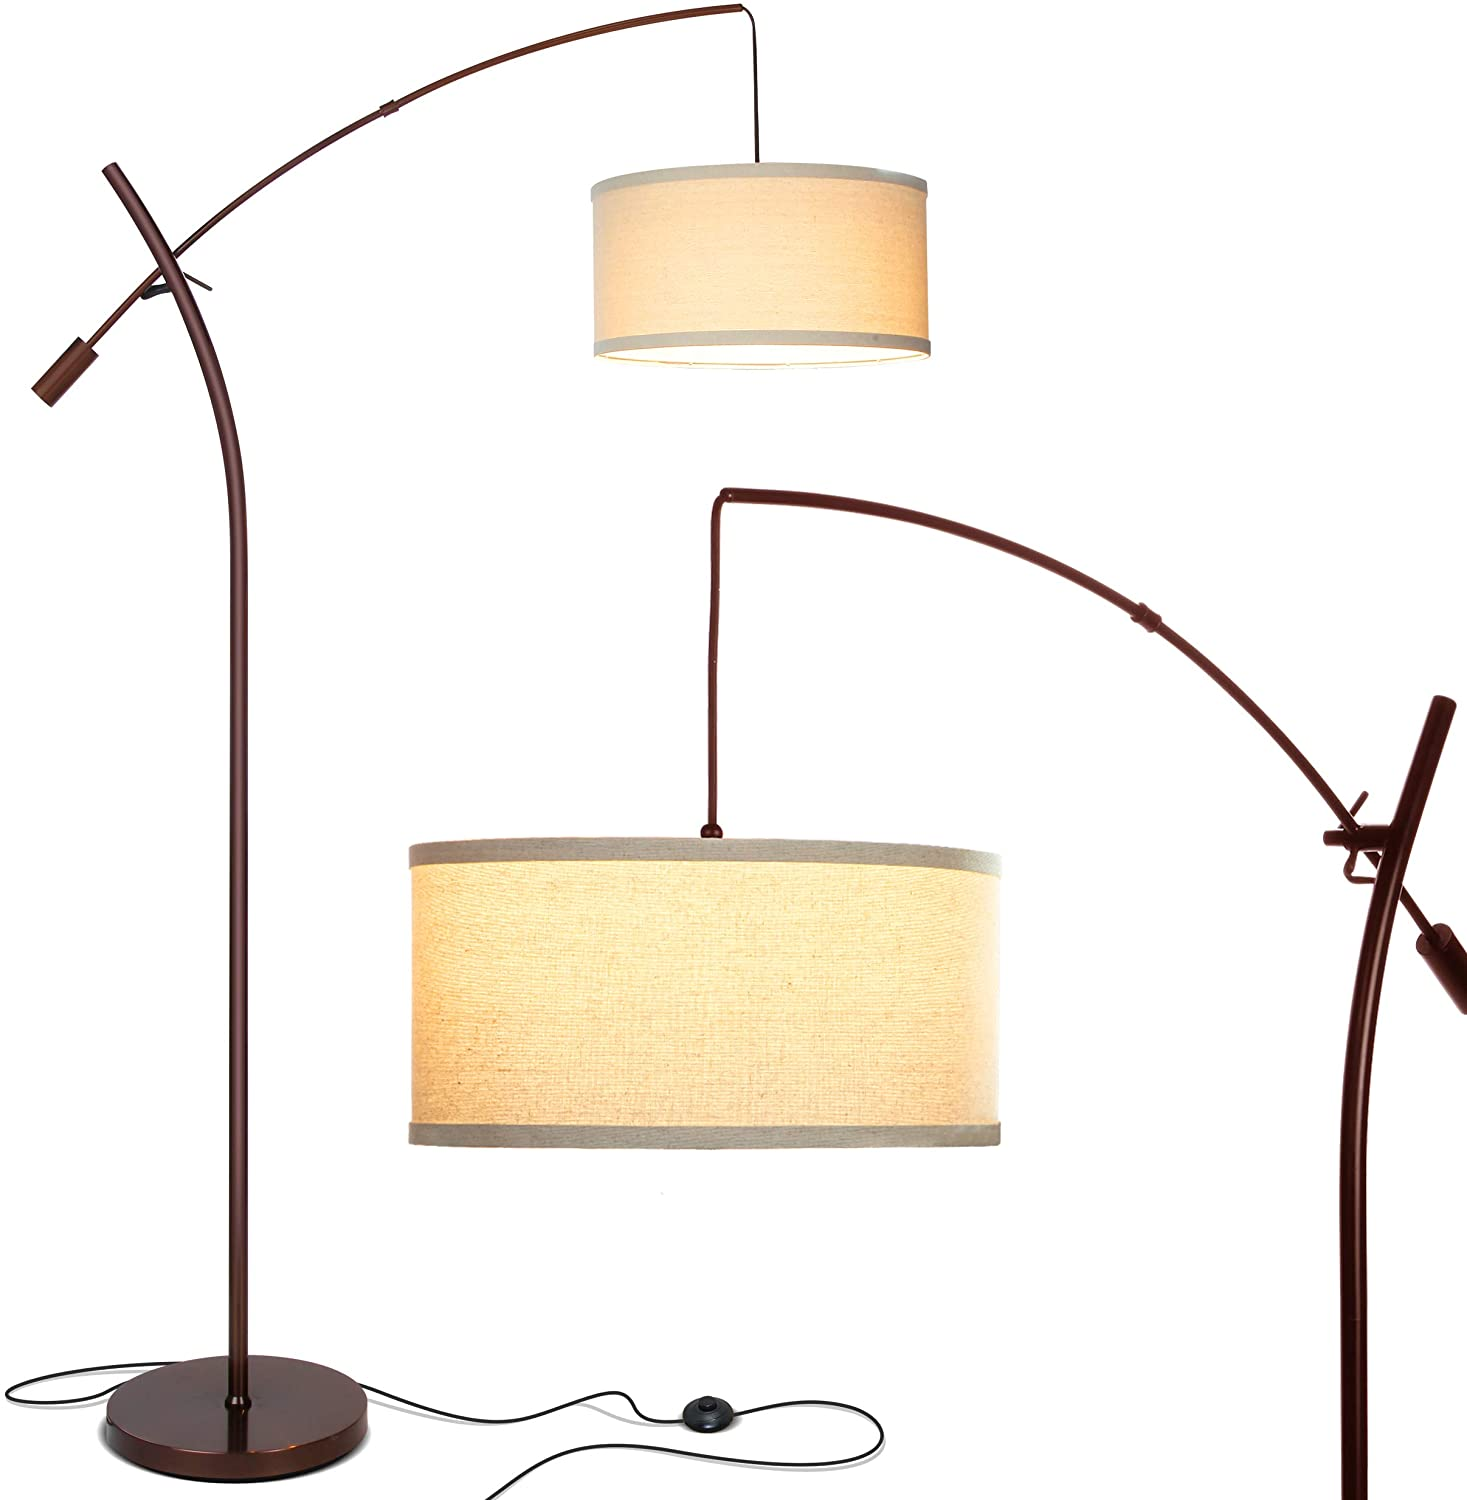 Brightech Grayson Arc Floor Lamp Tall Standing Lamp Over The Living Room Couch Adjustable Cantilever Arm With Shade Oil Brushed Bronze